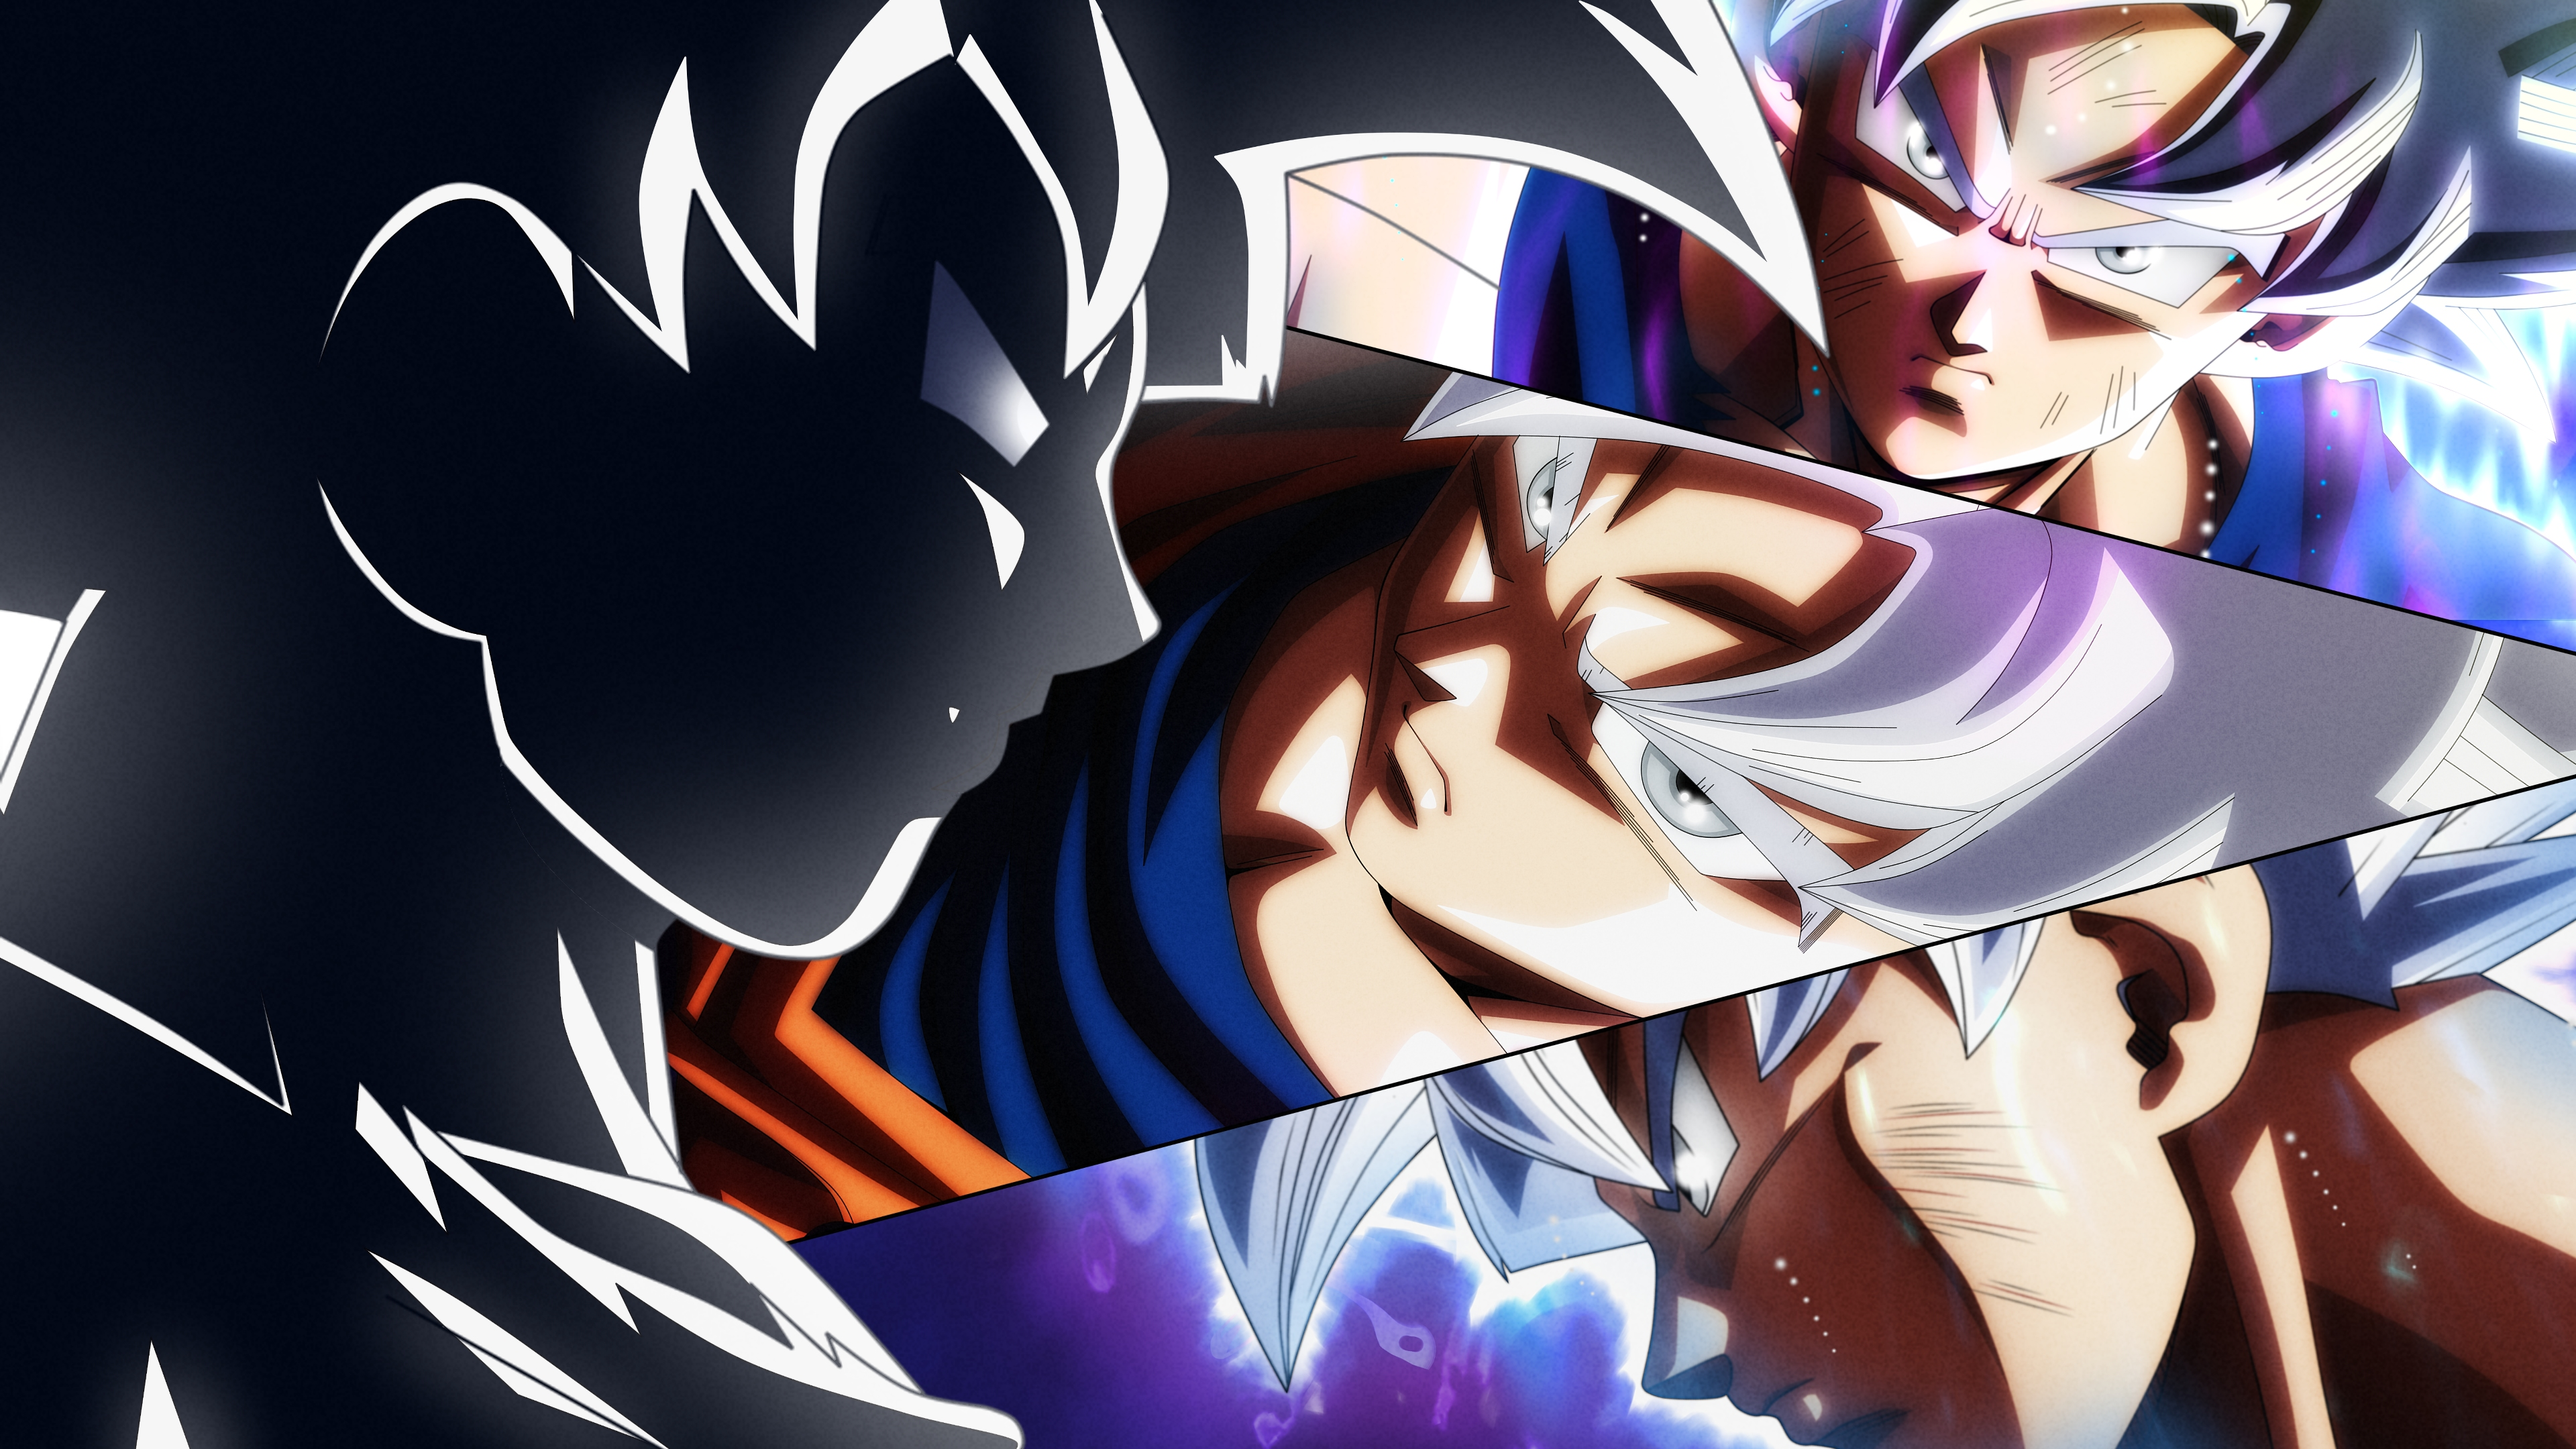 Dragon Ball Super Wallpaper 4k Posted By Ethan Thompson